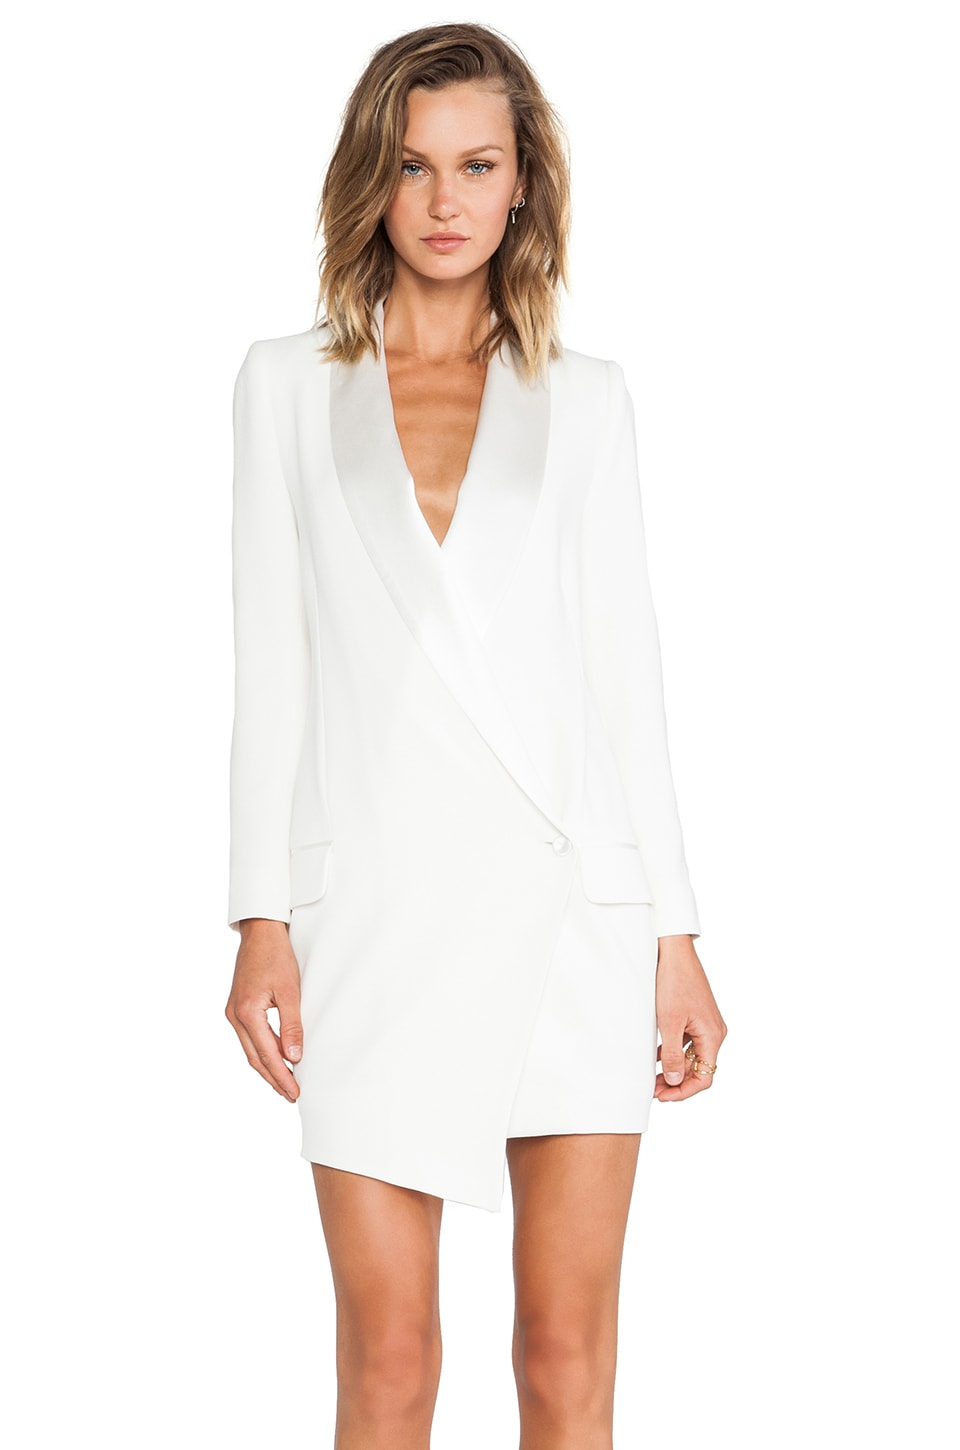 Haute Hippie Oversized Asymmetrical Blazer Dress in Antique Ivory